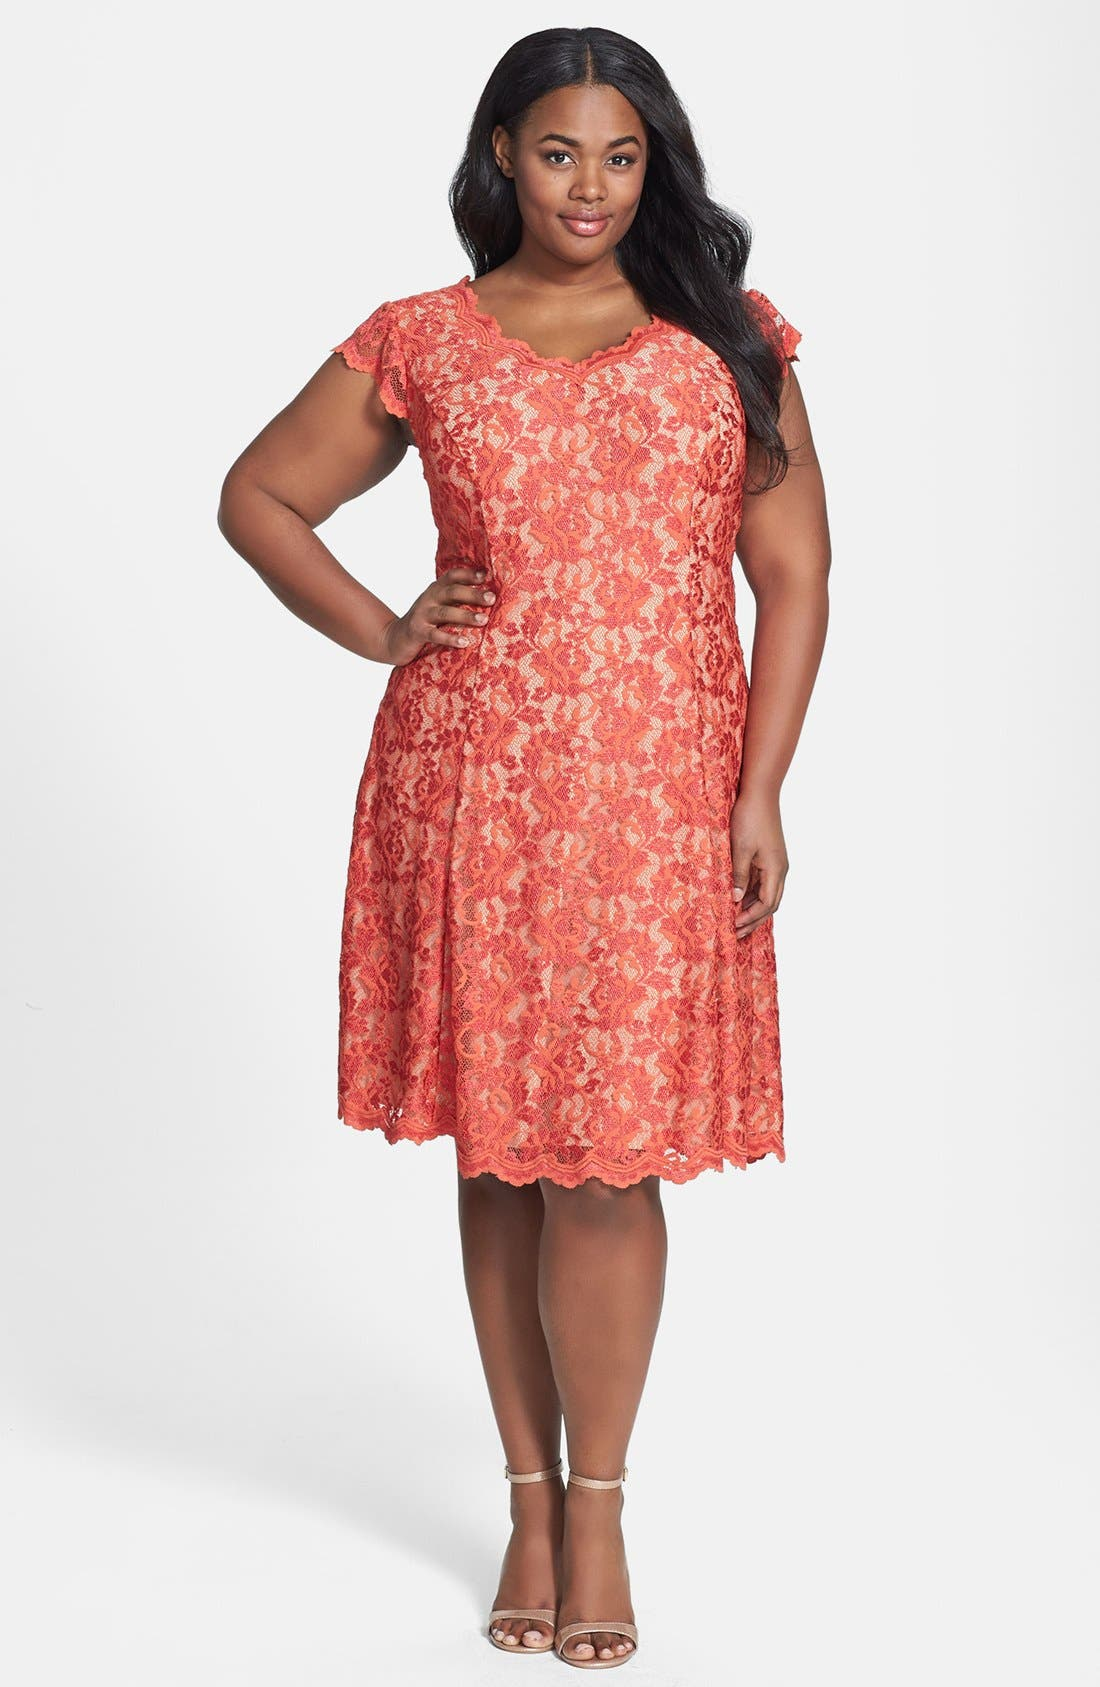 Alternate Image 1 Selected - ABS by Allen Schwartz Lace Fit & Flare Dress (Plus Size)